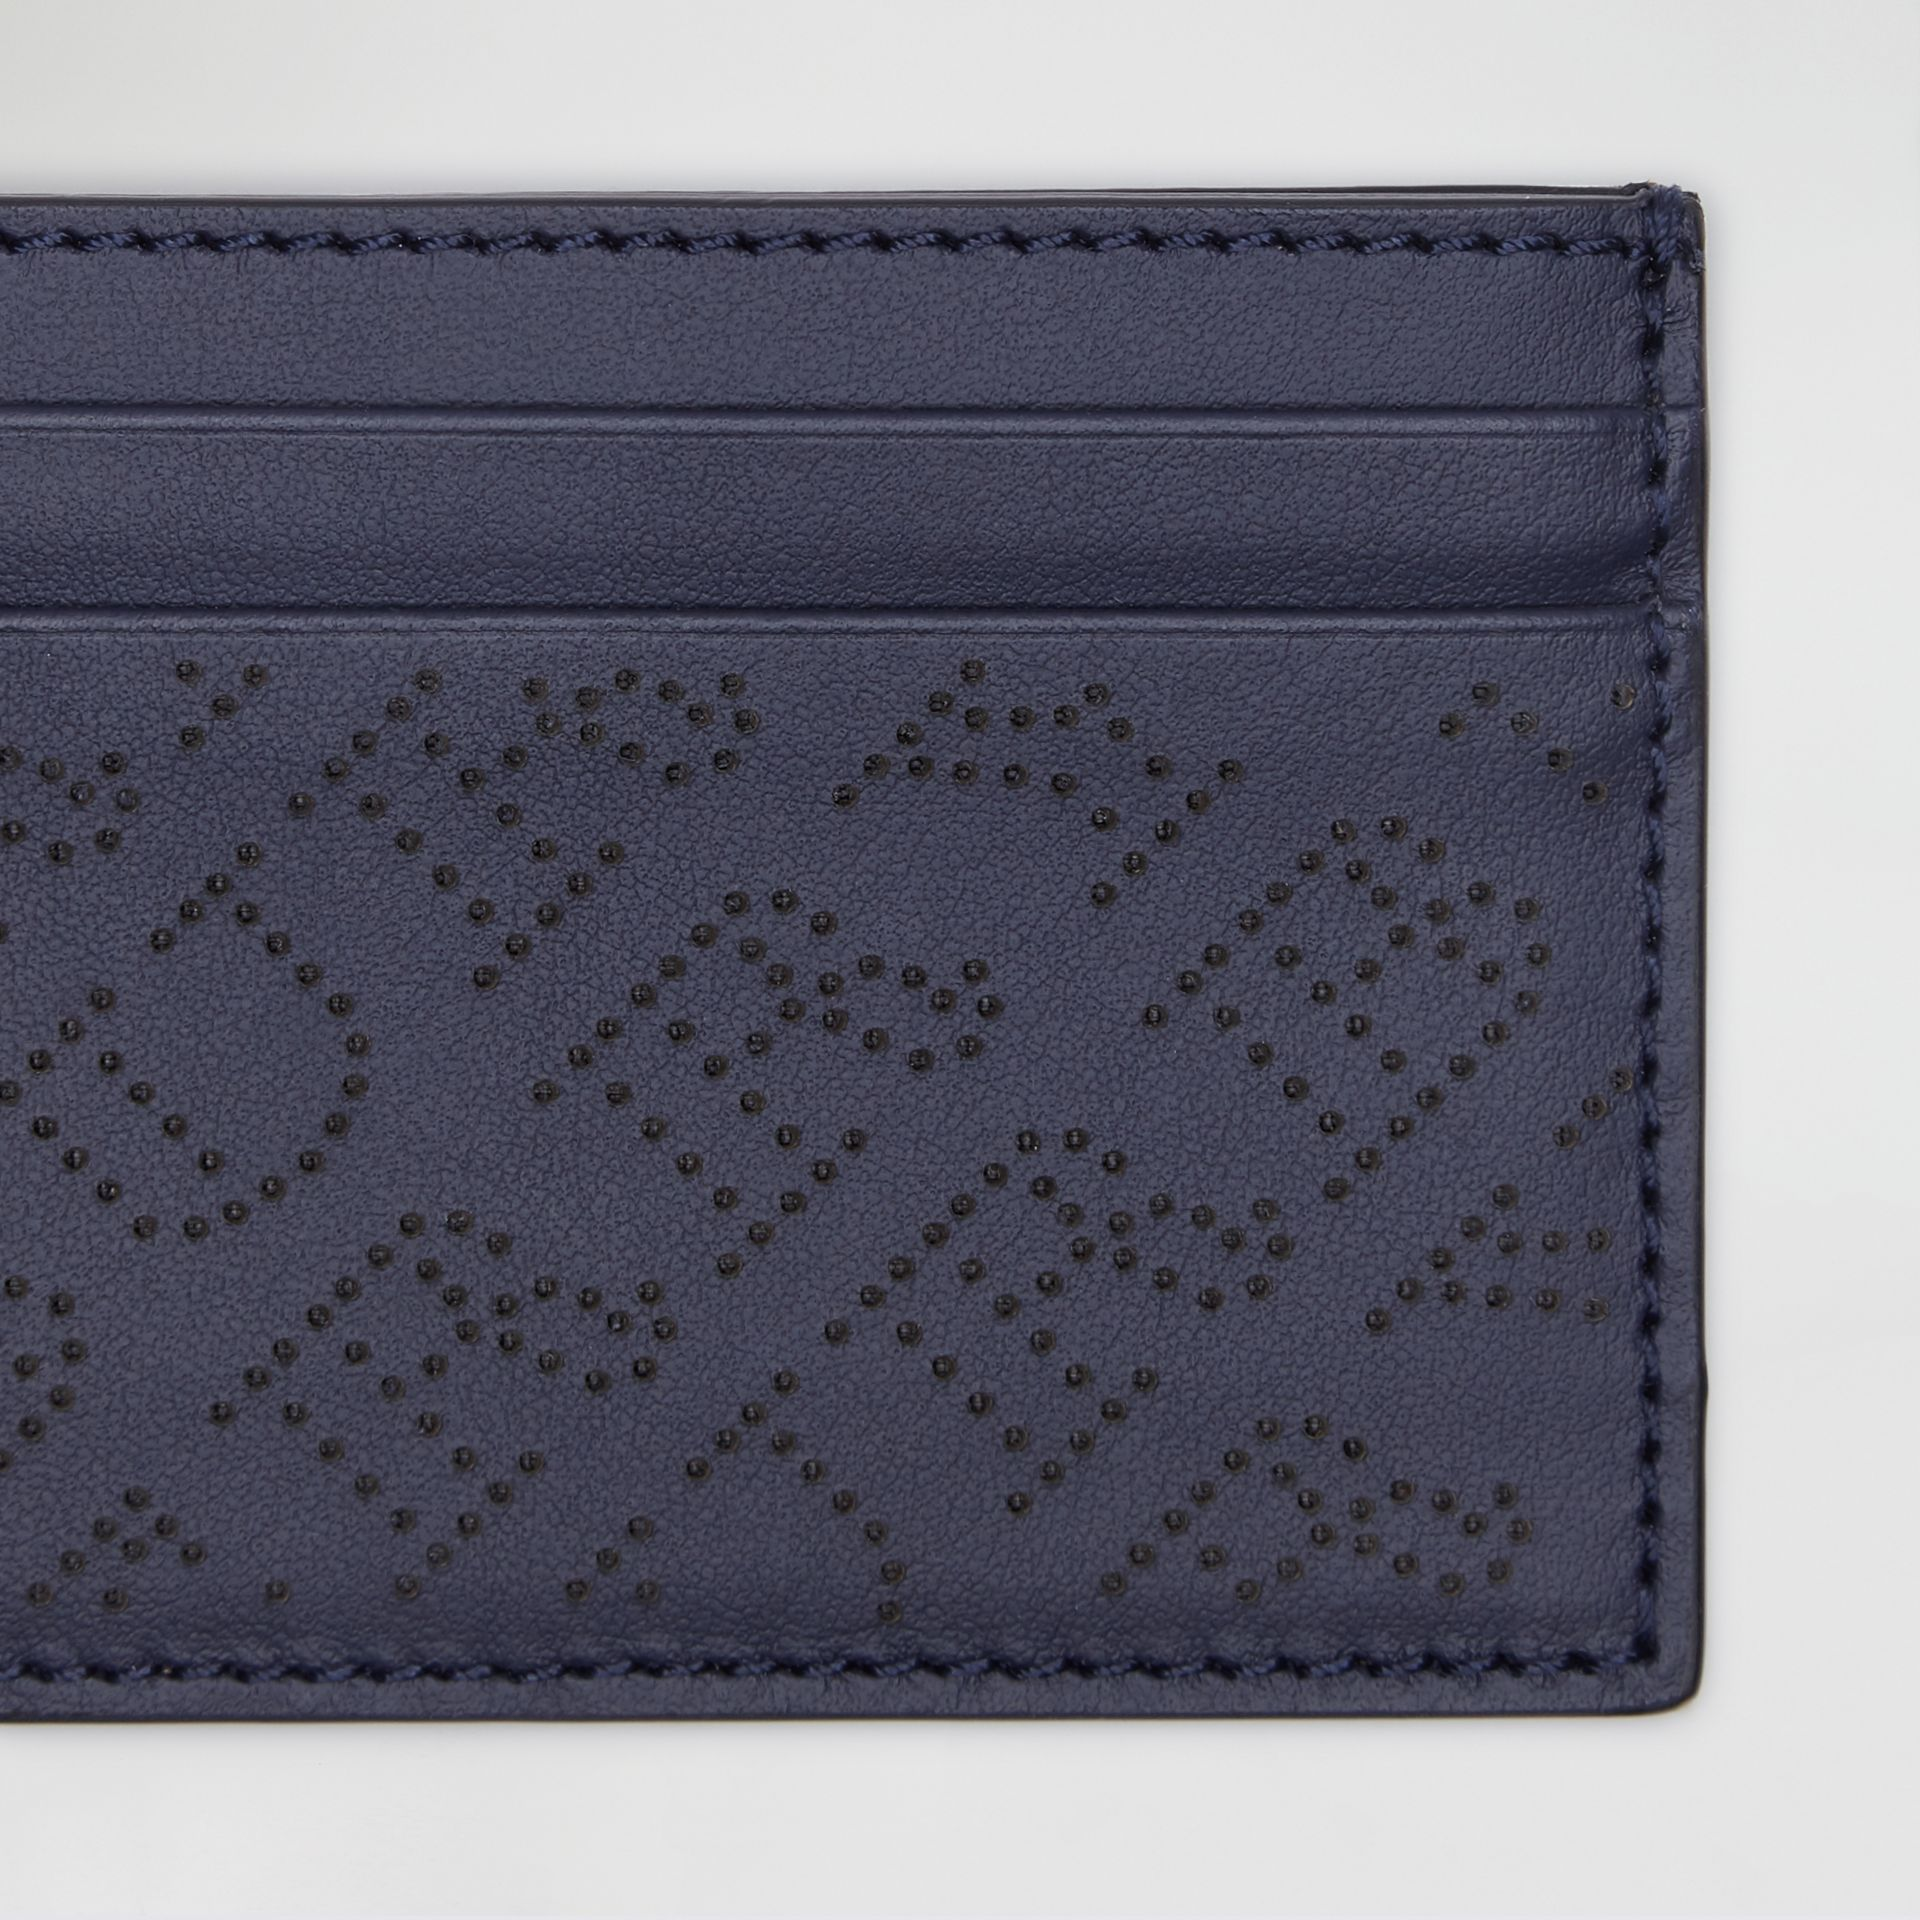 Perforated Logo Leather Card Case in Navy - Women | Burberry - gallery image 1